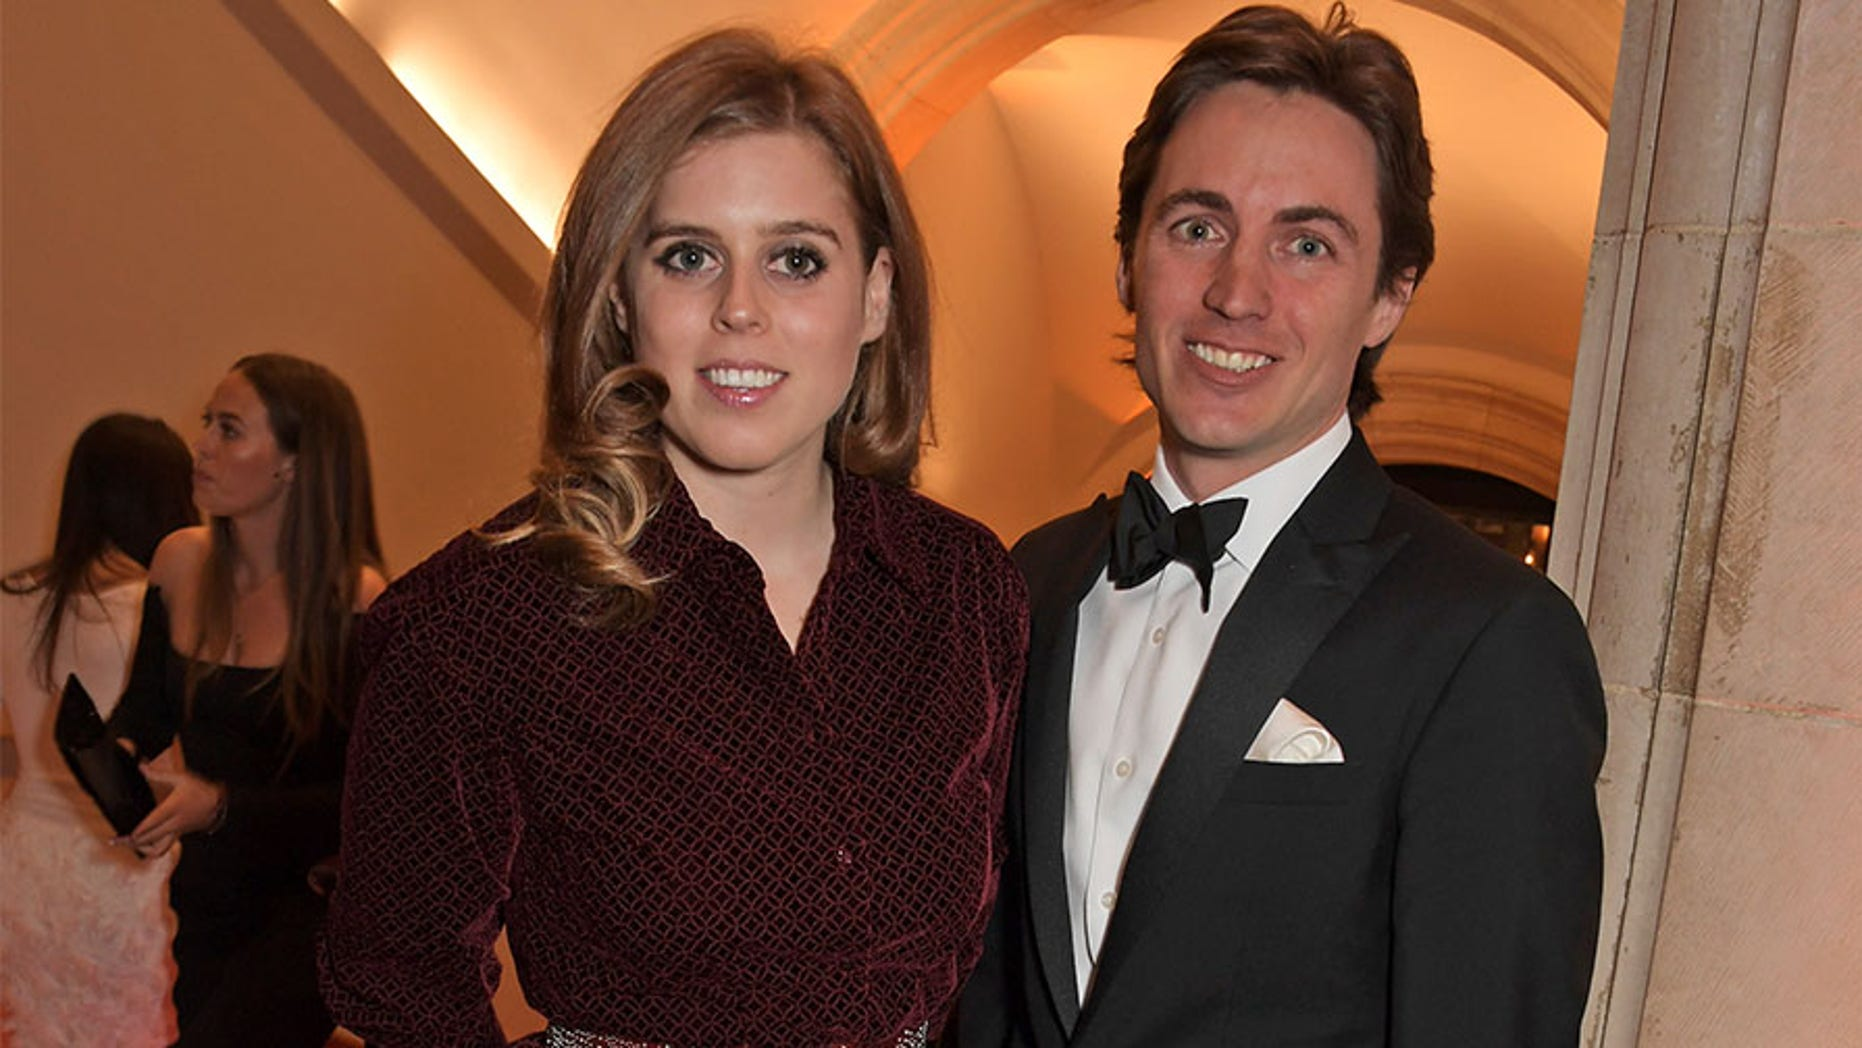 LONDON, ENGLAND - MARCH 12: Princess Beatrice of York and Edoardo Mapelli Mozzi attend The Portrait Gala 2019 hosted by Dr. Nicholas Cullinan and Edward Enninful to raise funds for the National Portrait Gallery's 'Inspiring People' project at the National Portrait Gallery on March 12, 2019 in London, England.